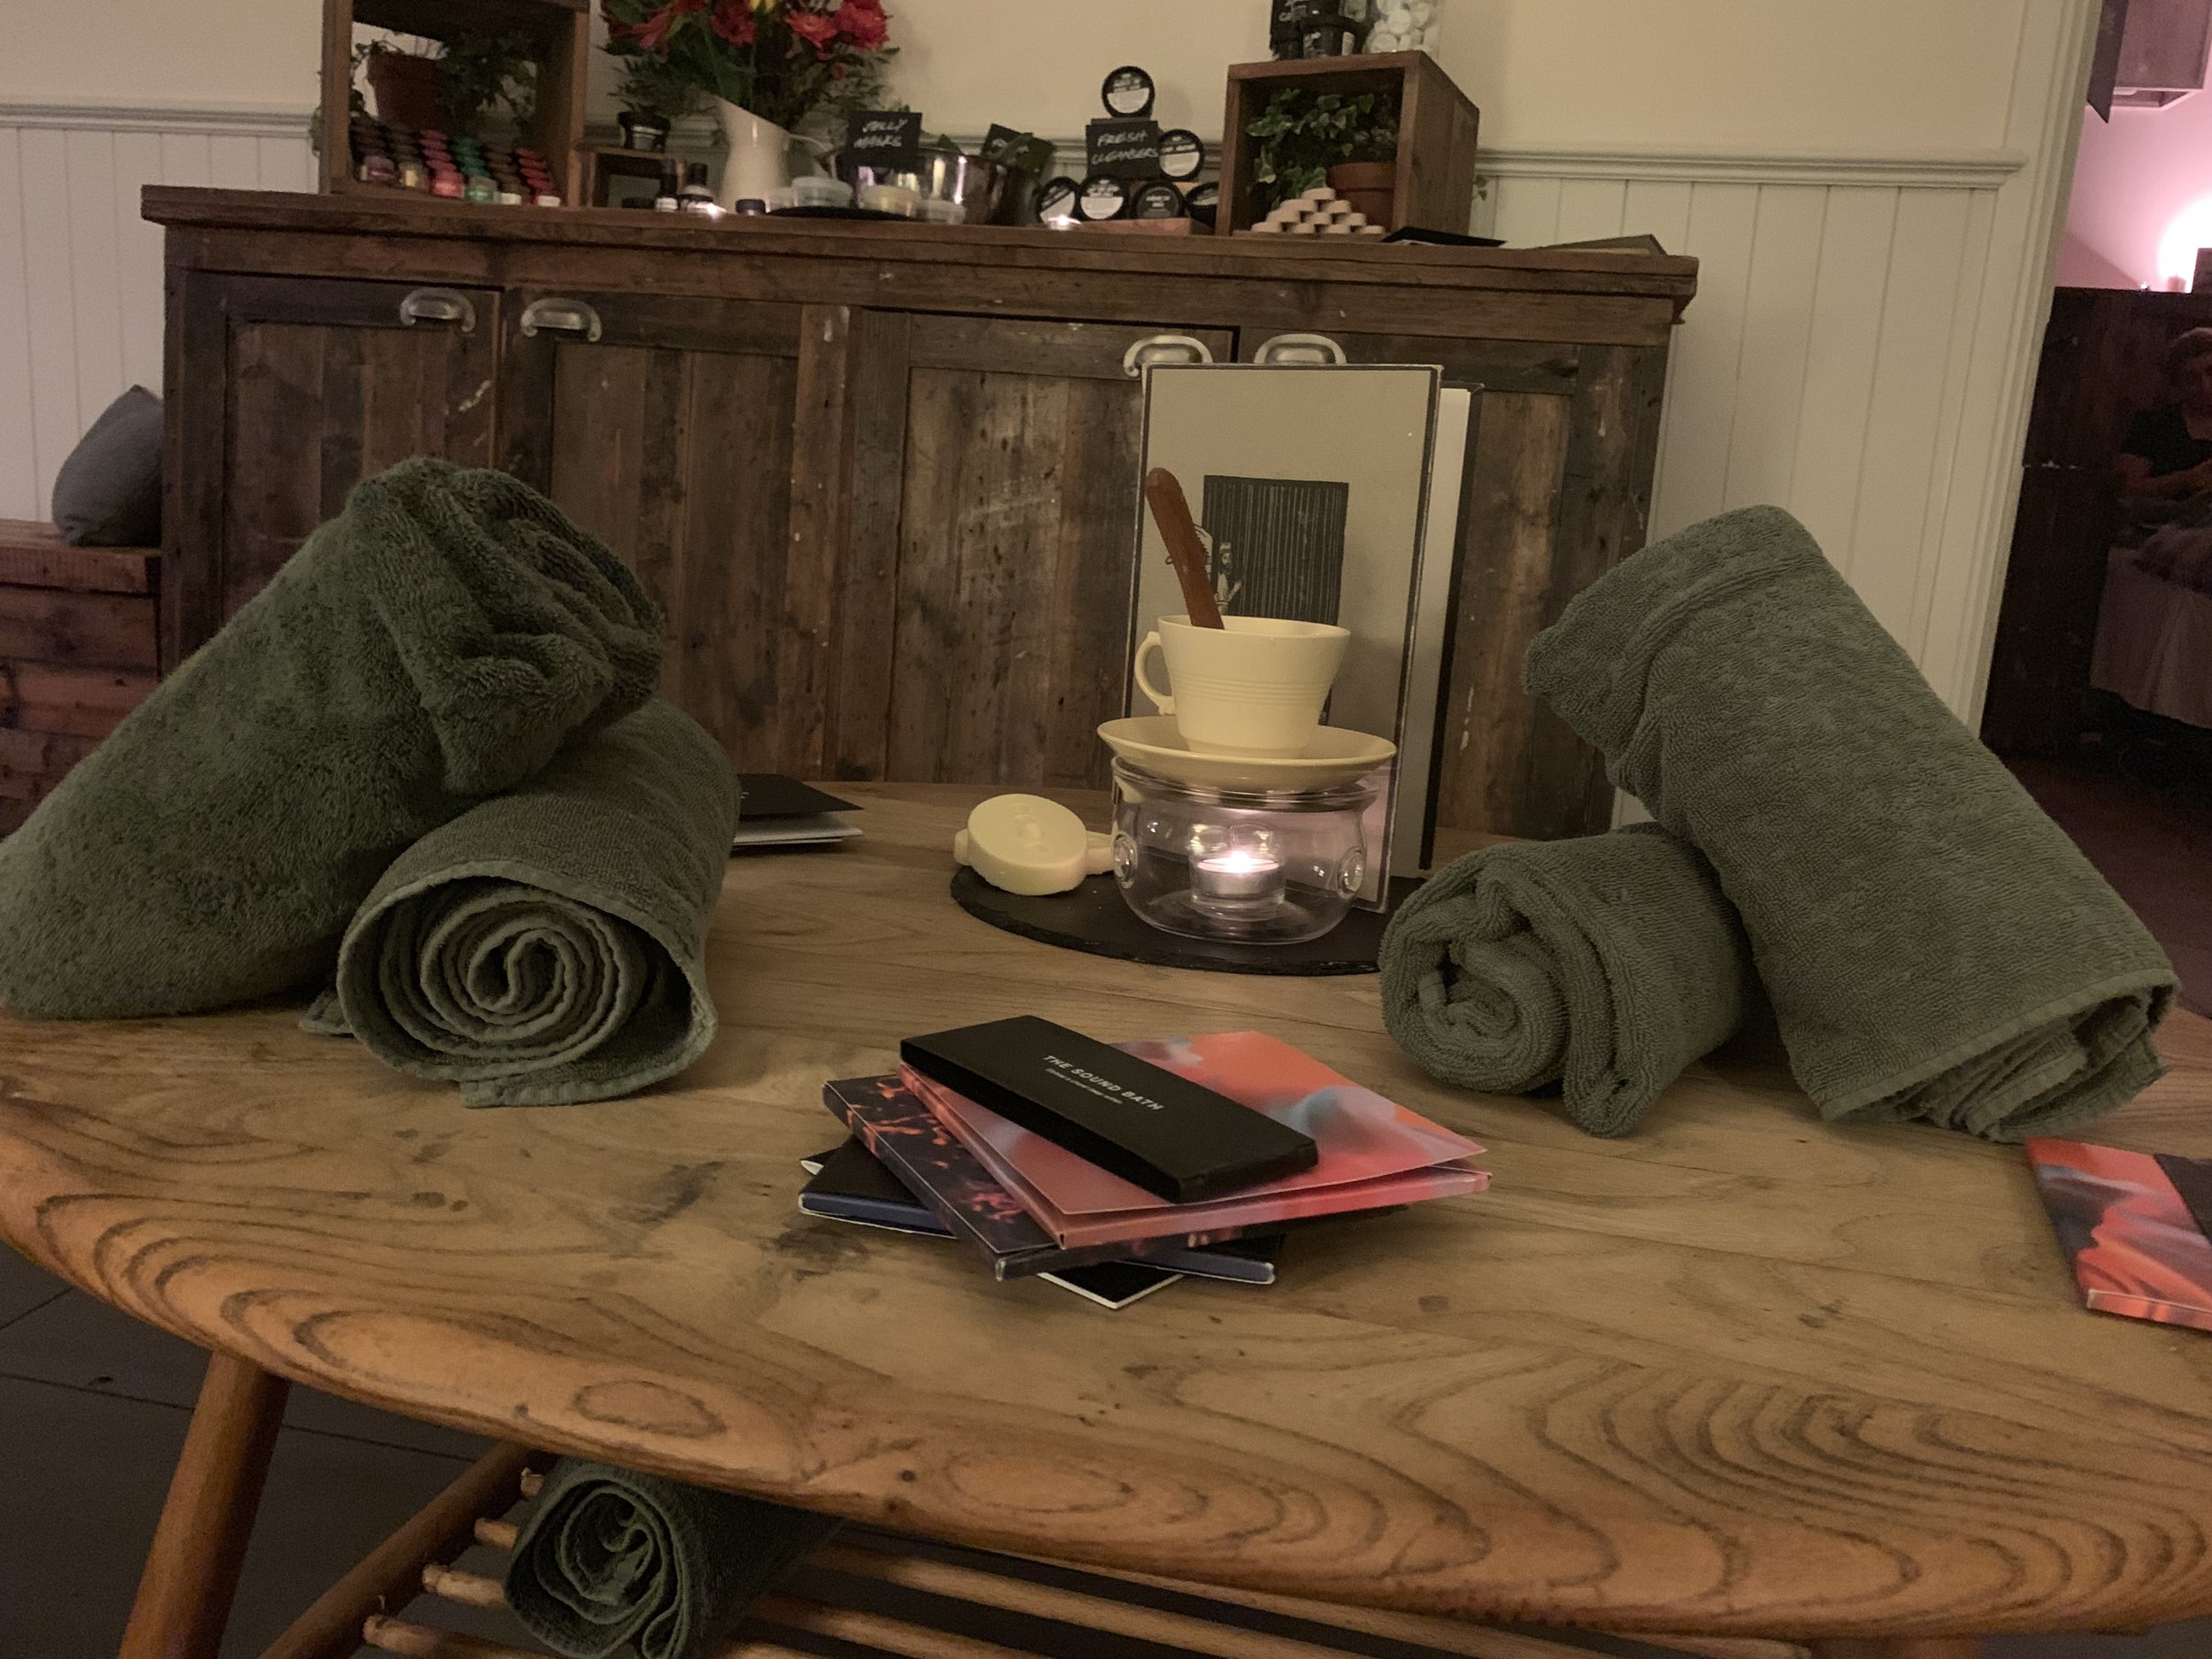 An image of Lush pregnancy products, towels and a candle at the spa